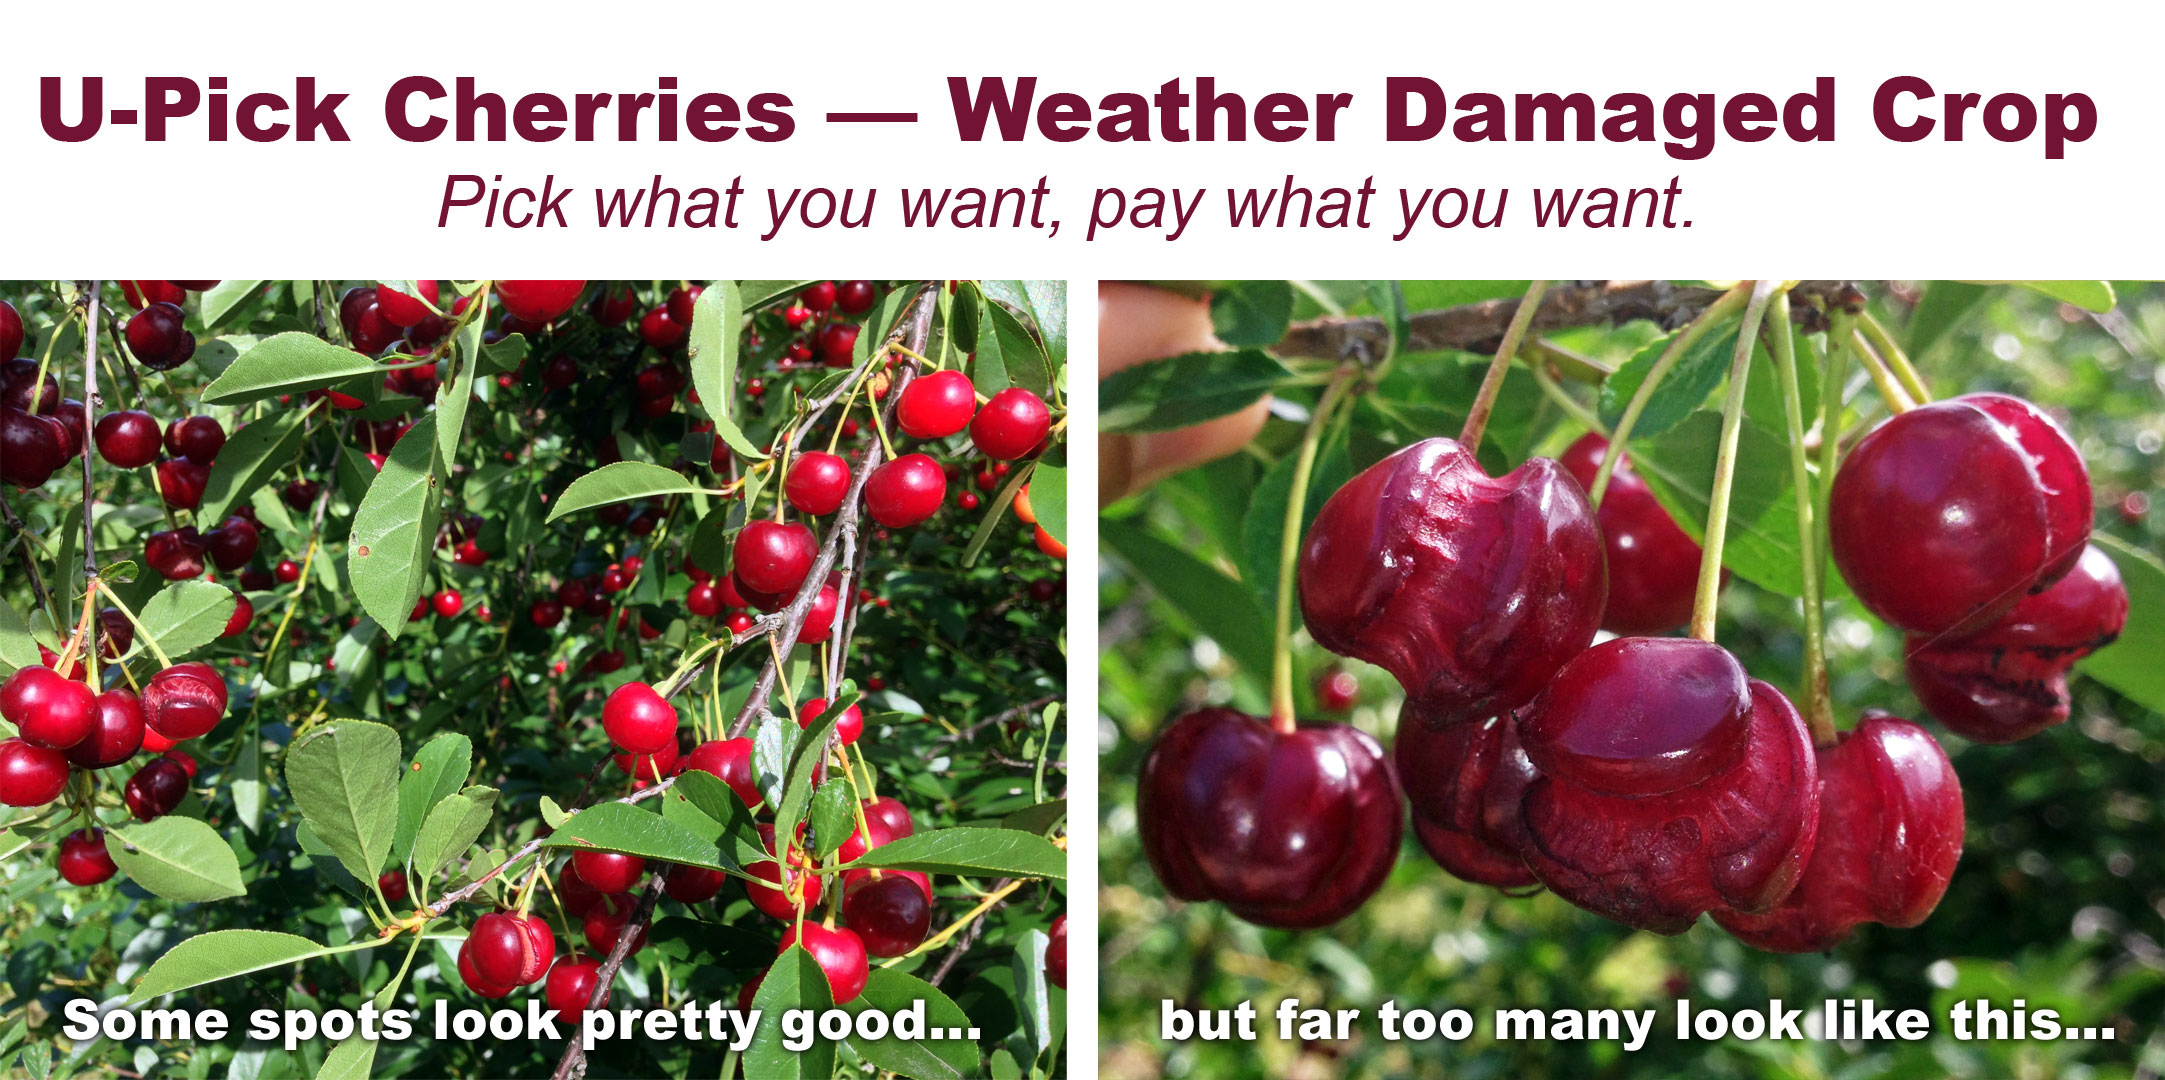 U-Pick Cherries — Weather Damaged Crop // Pick what you want, pay what you want.